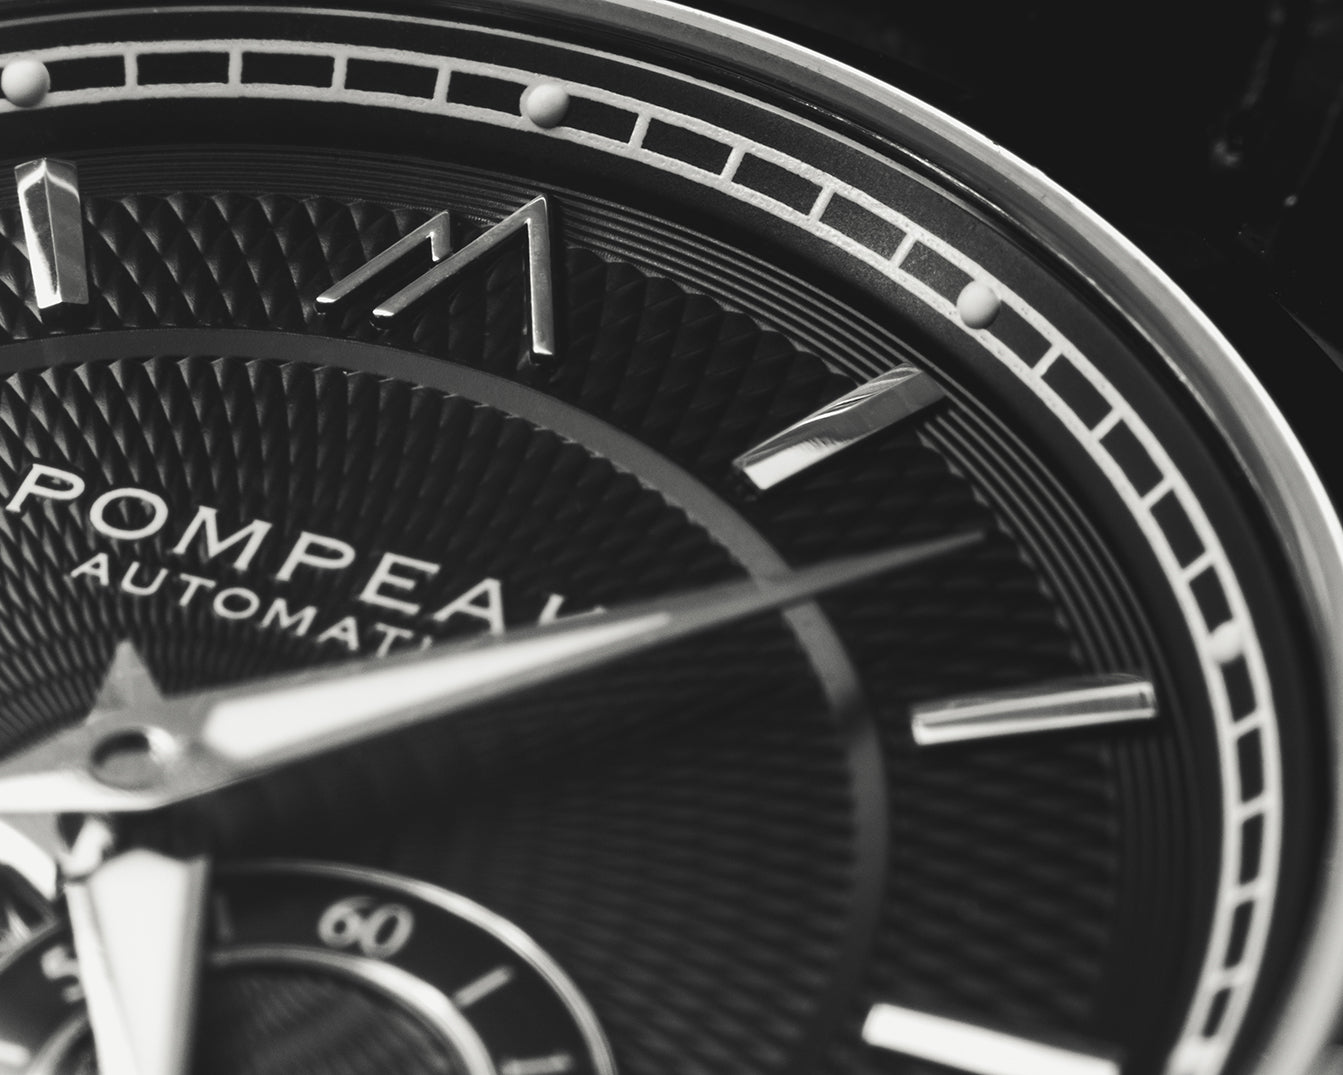 Pompeak automatic watch macro dial image.